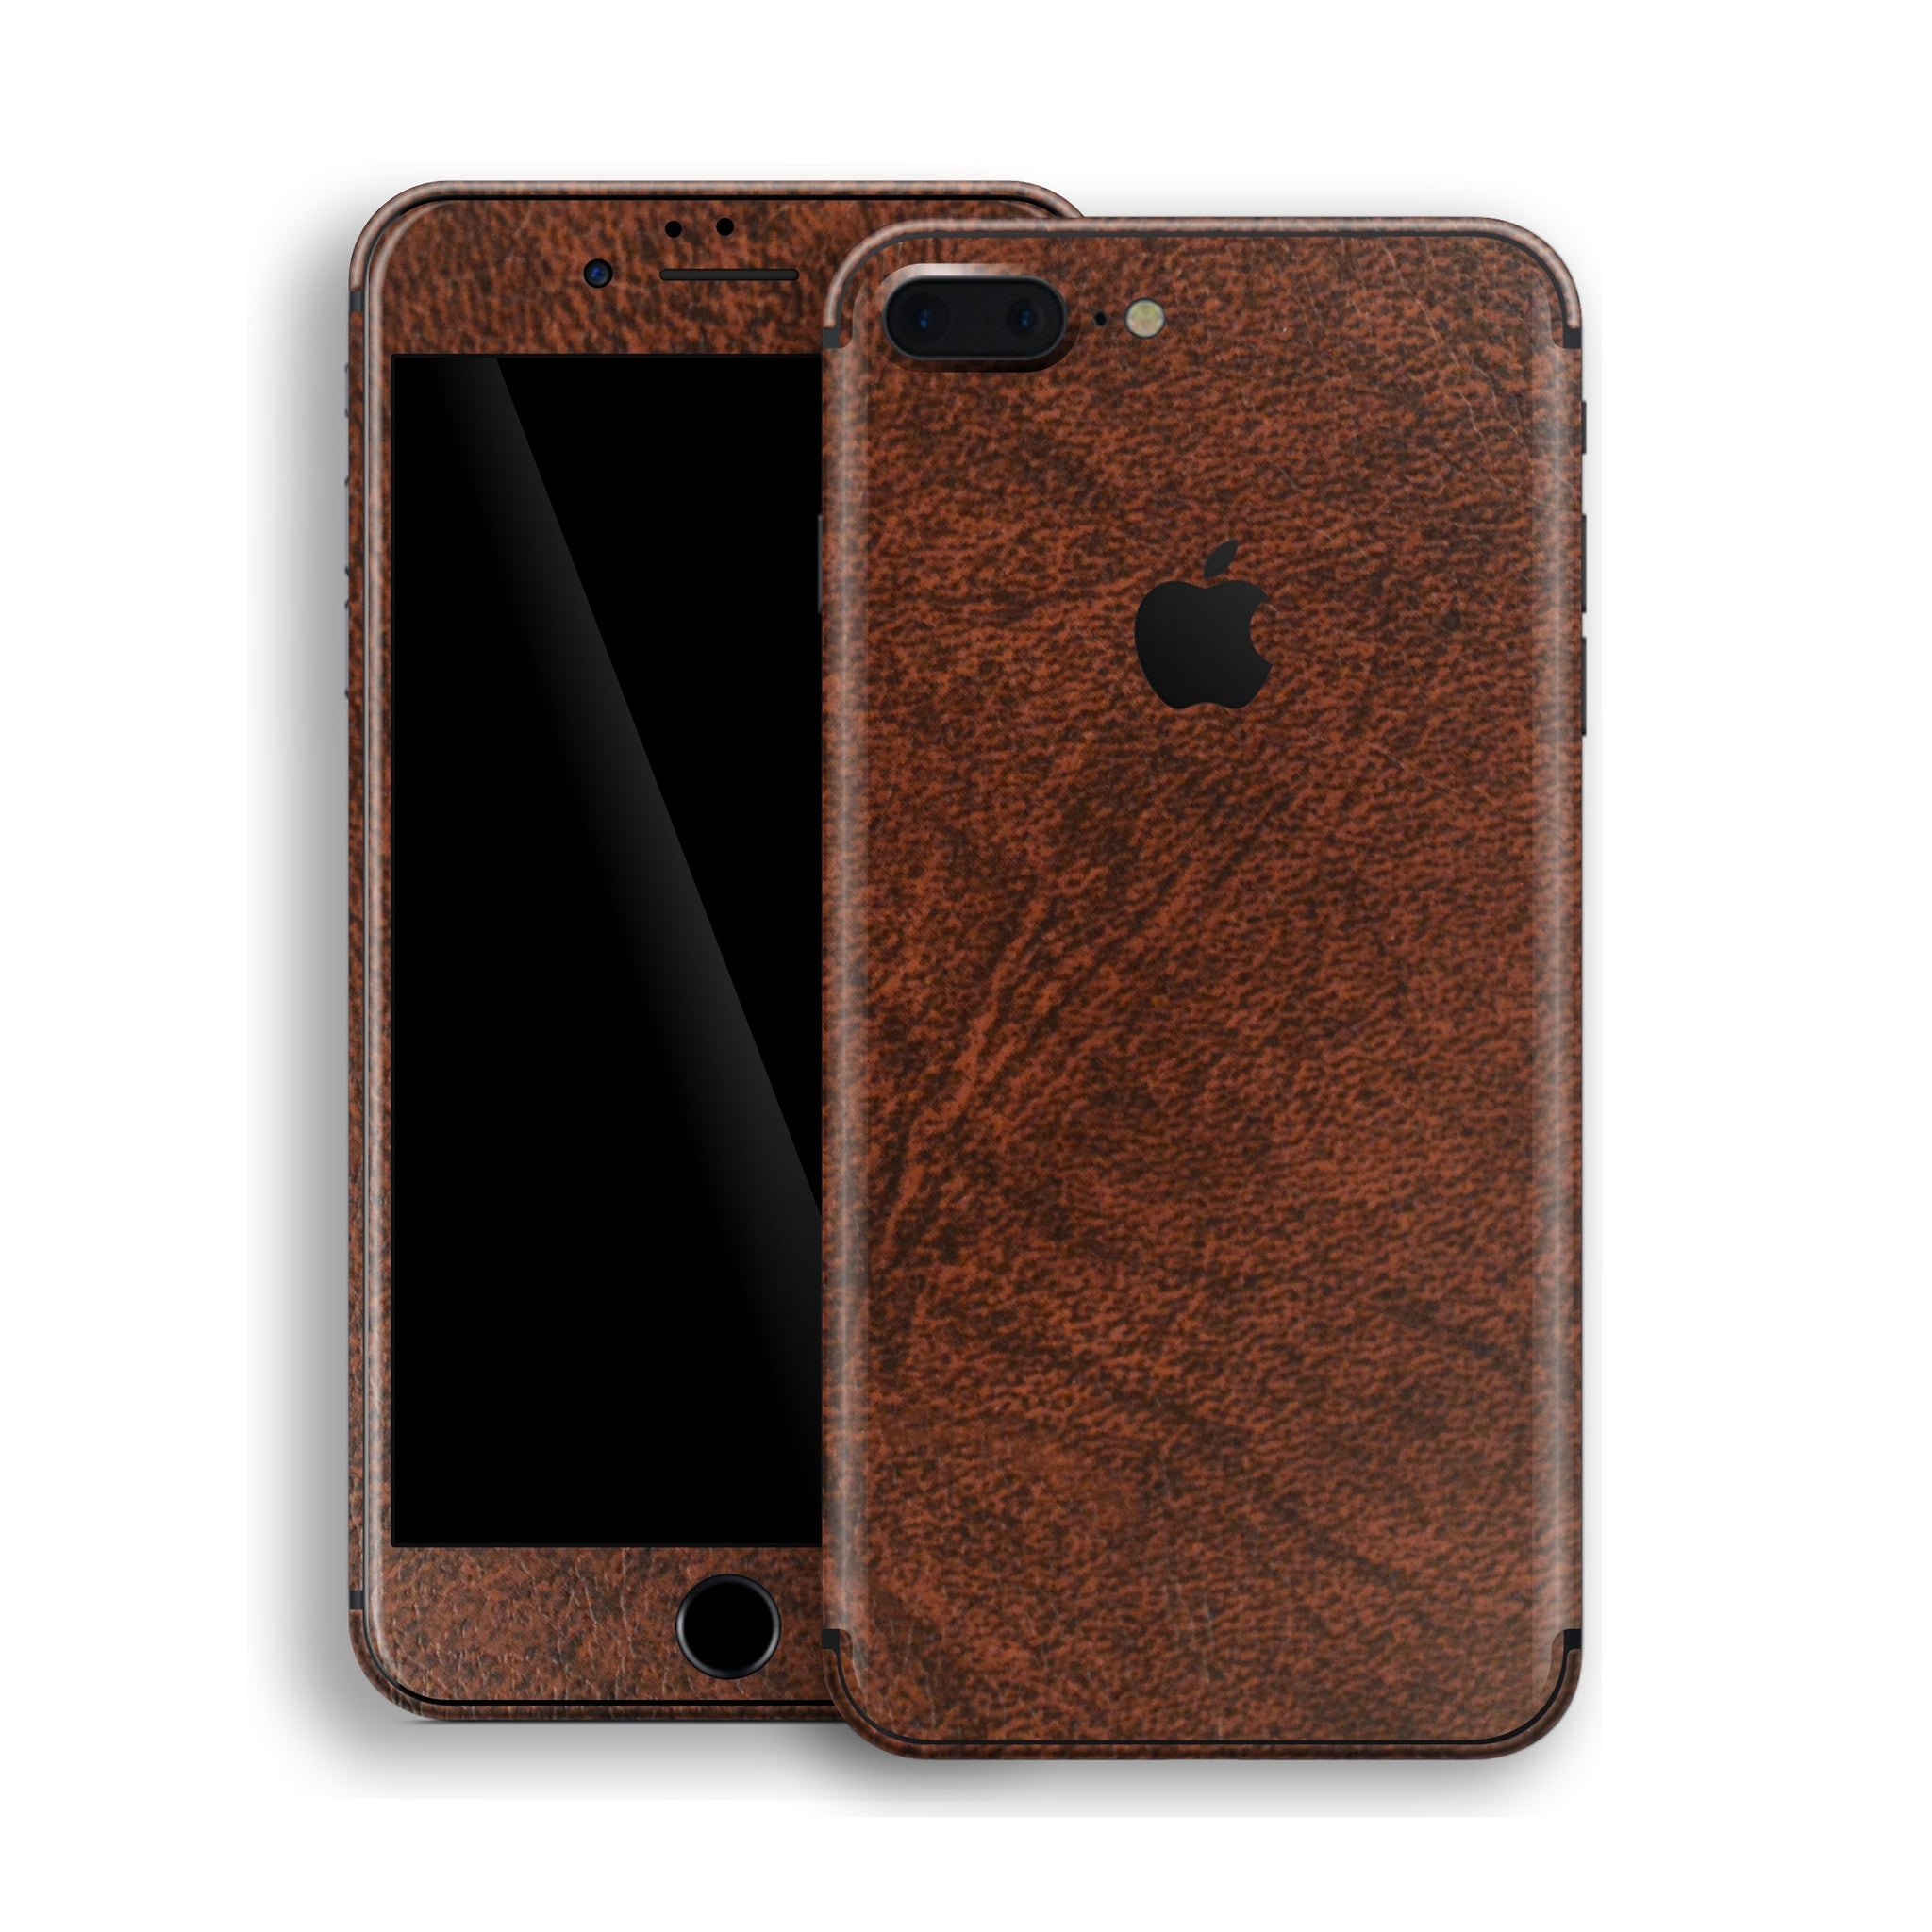 iPhone 8 PLUS Luxuria Brown Leather Skin Wrap Decal Protector | EasySkinz